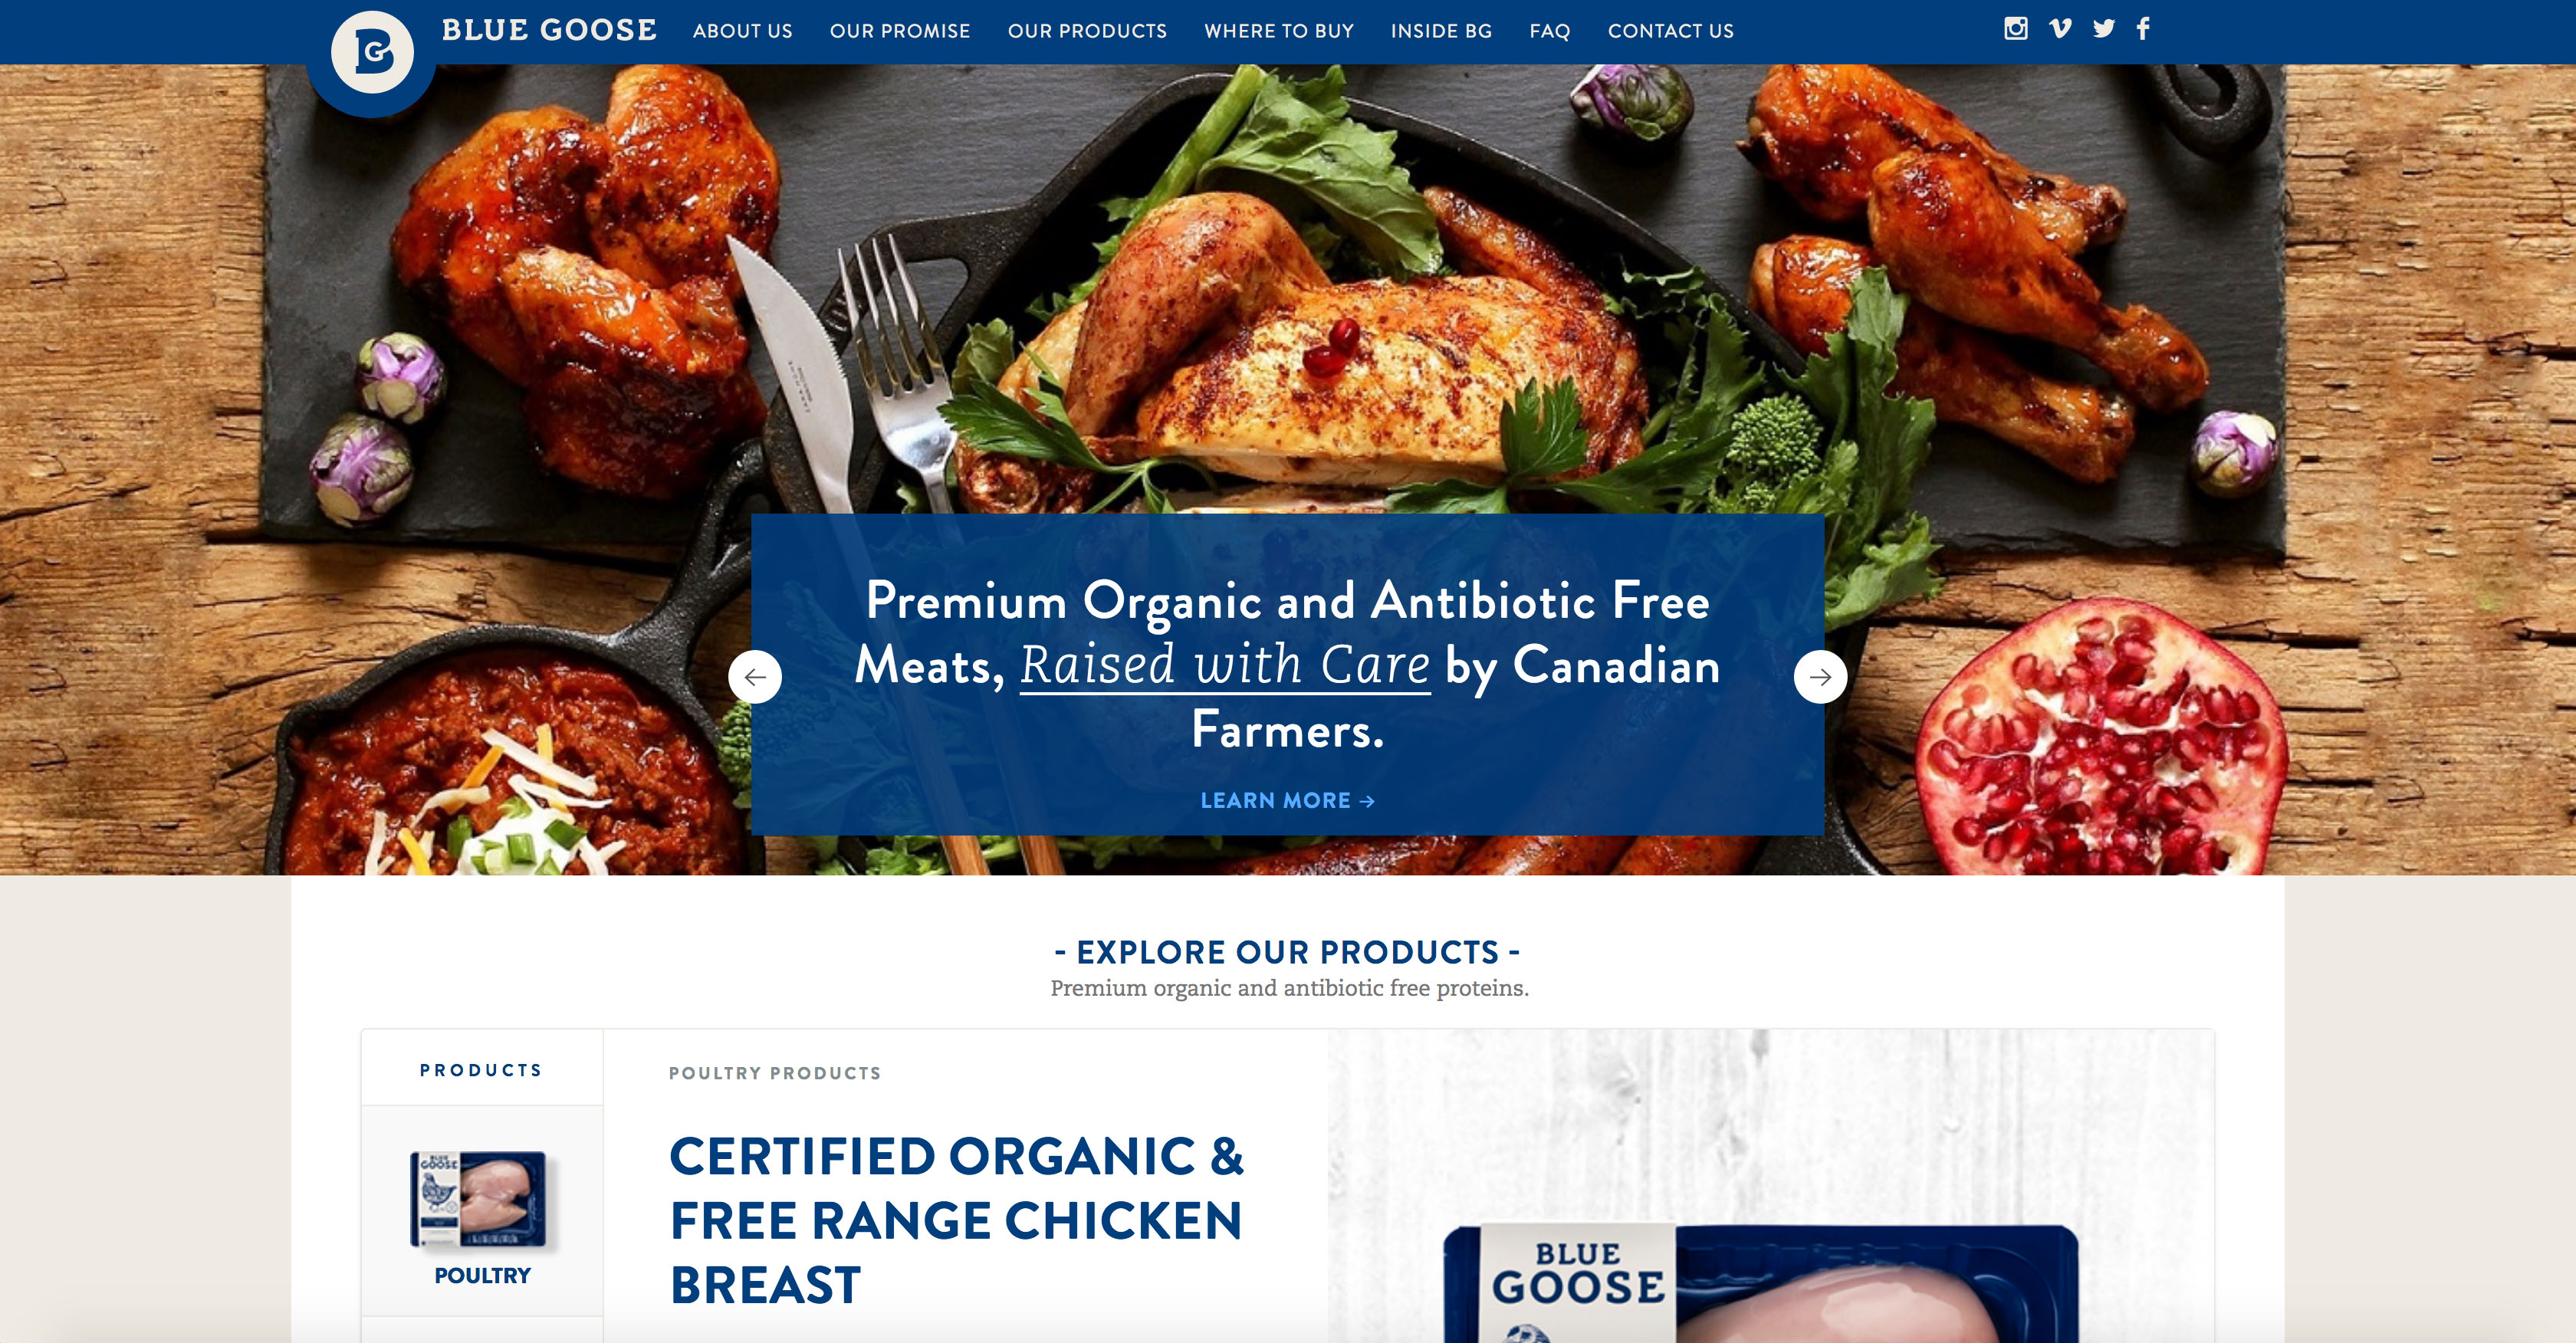 Consumer Product Goods - Blue Goose Hilborn Digital Website Design